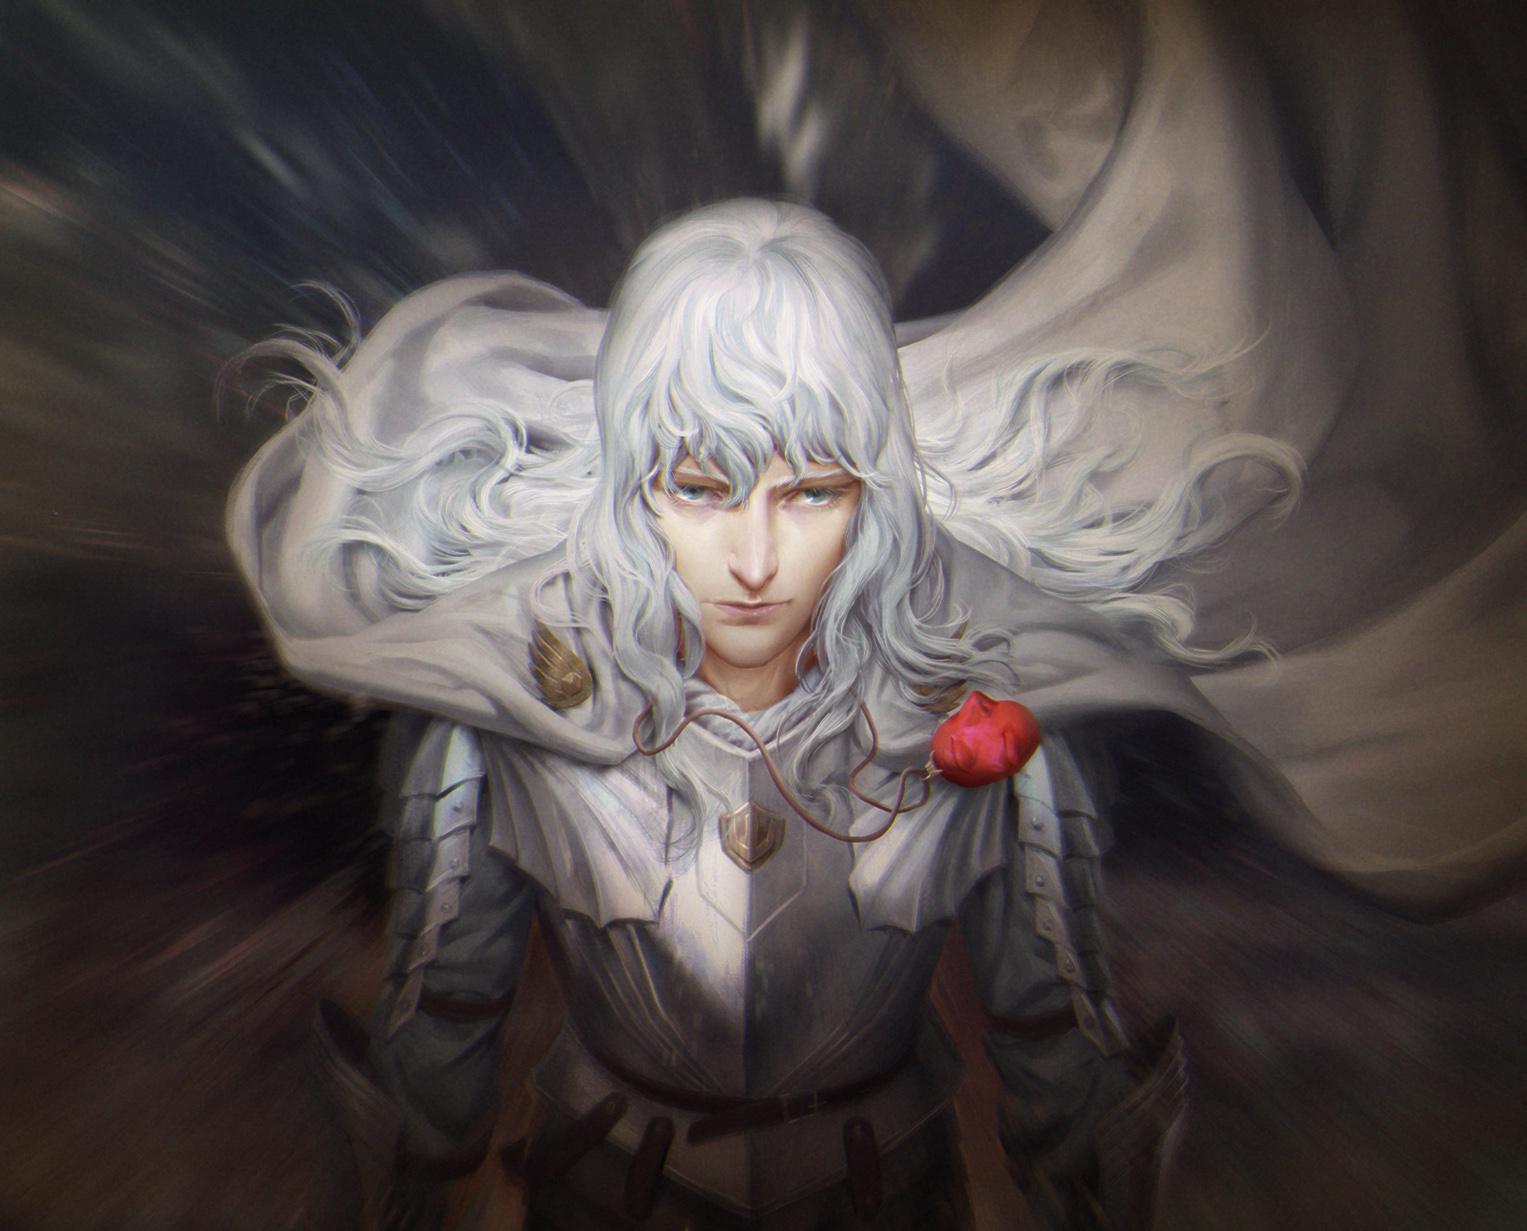 griffith berserk